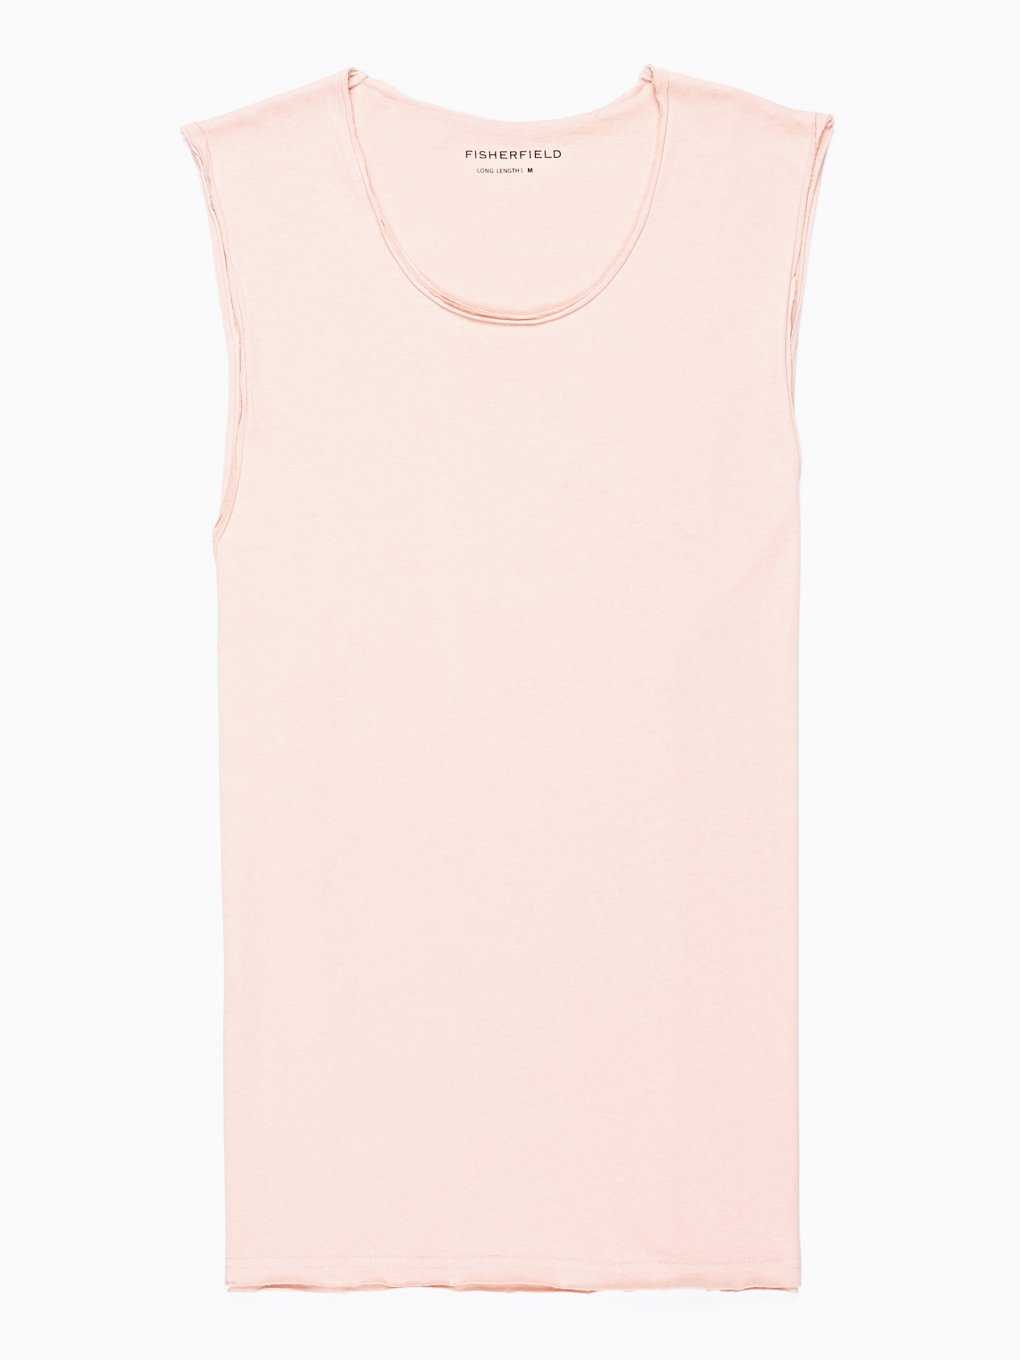 BASIC TANK TOP WITH RAW EDGE